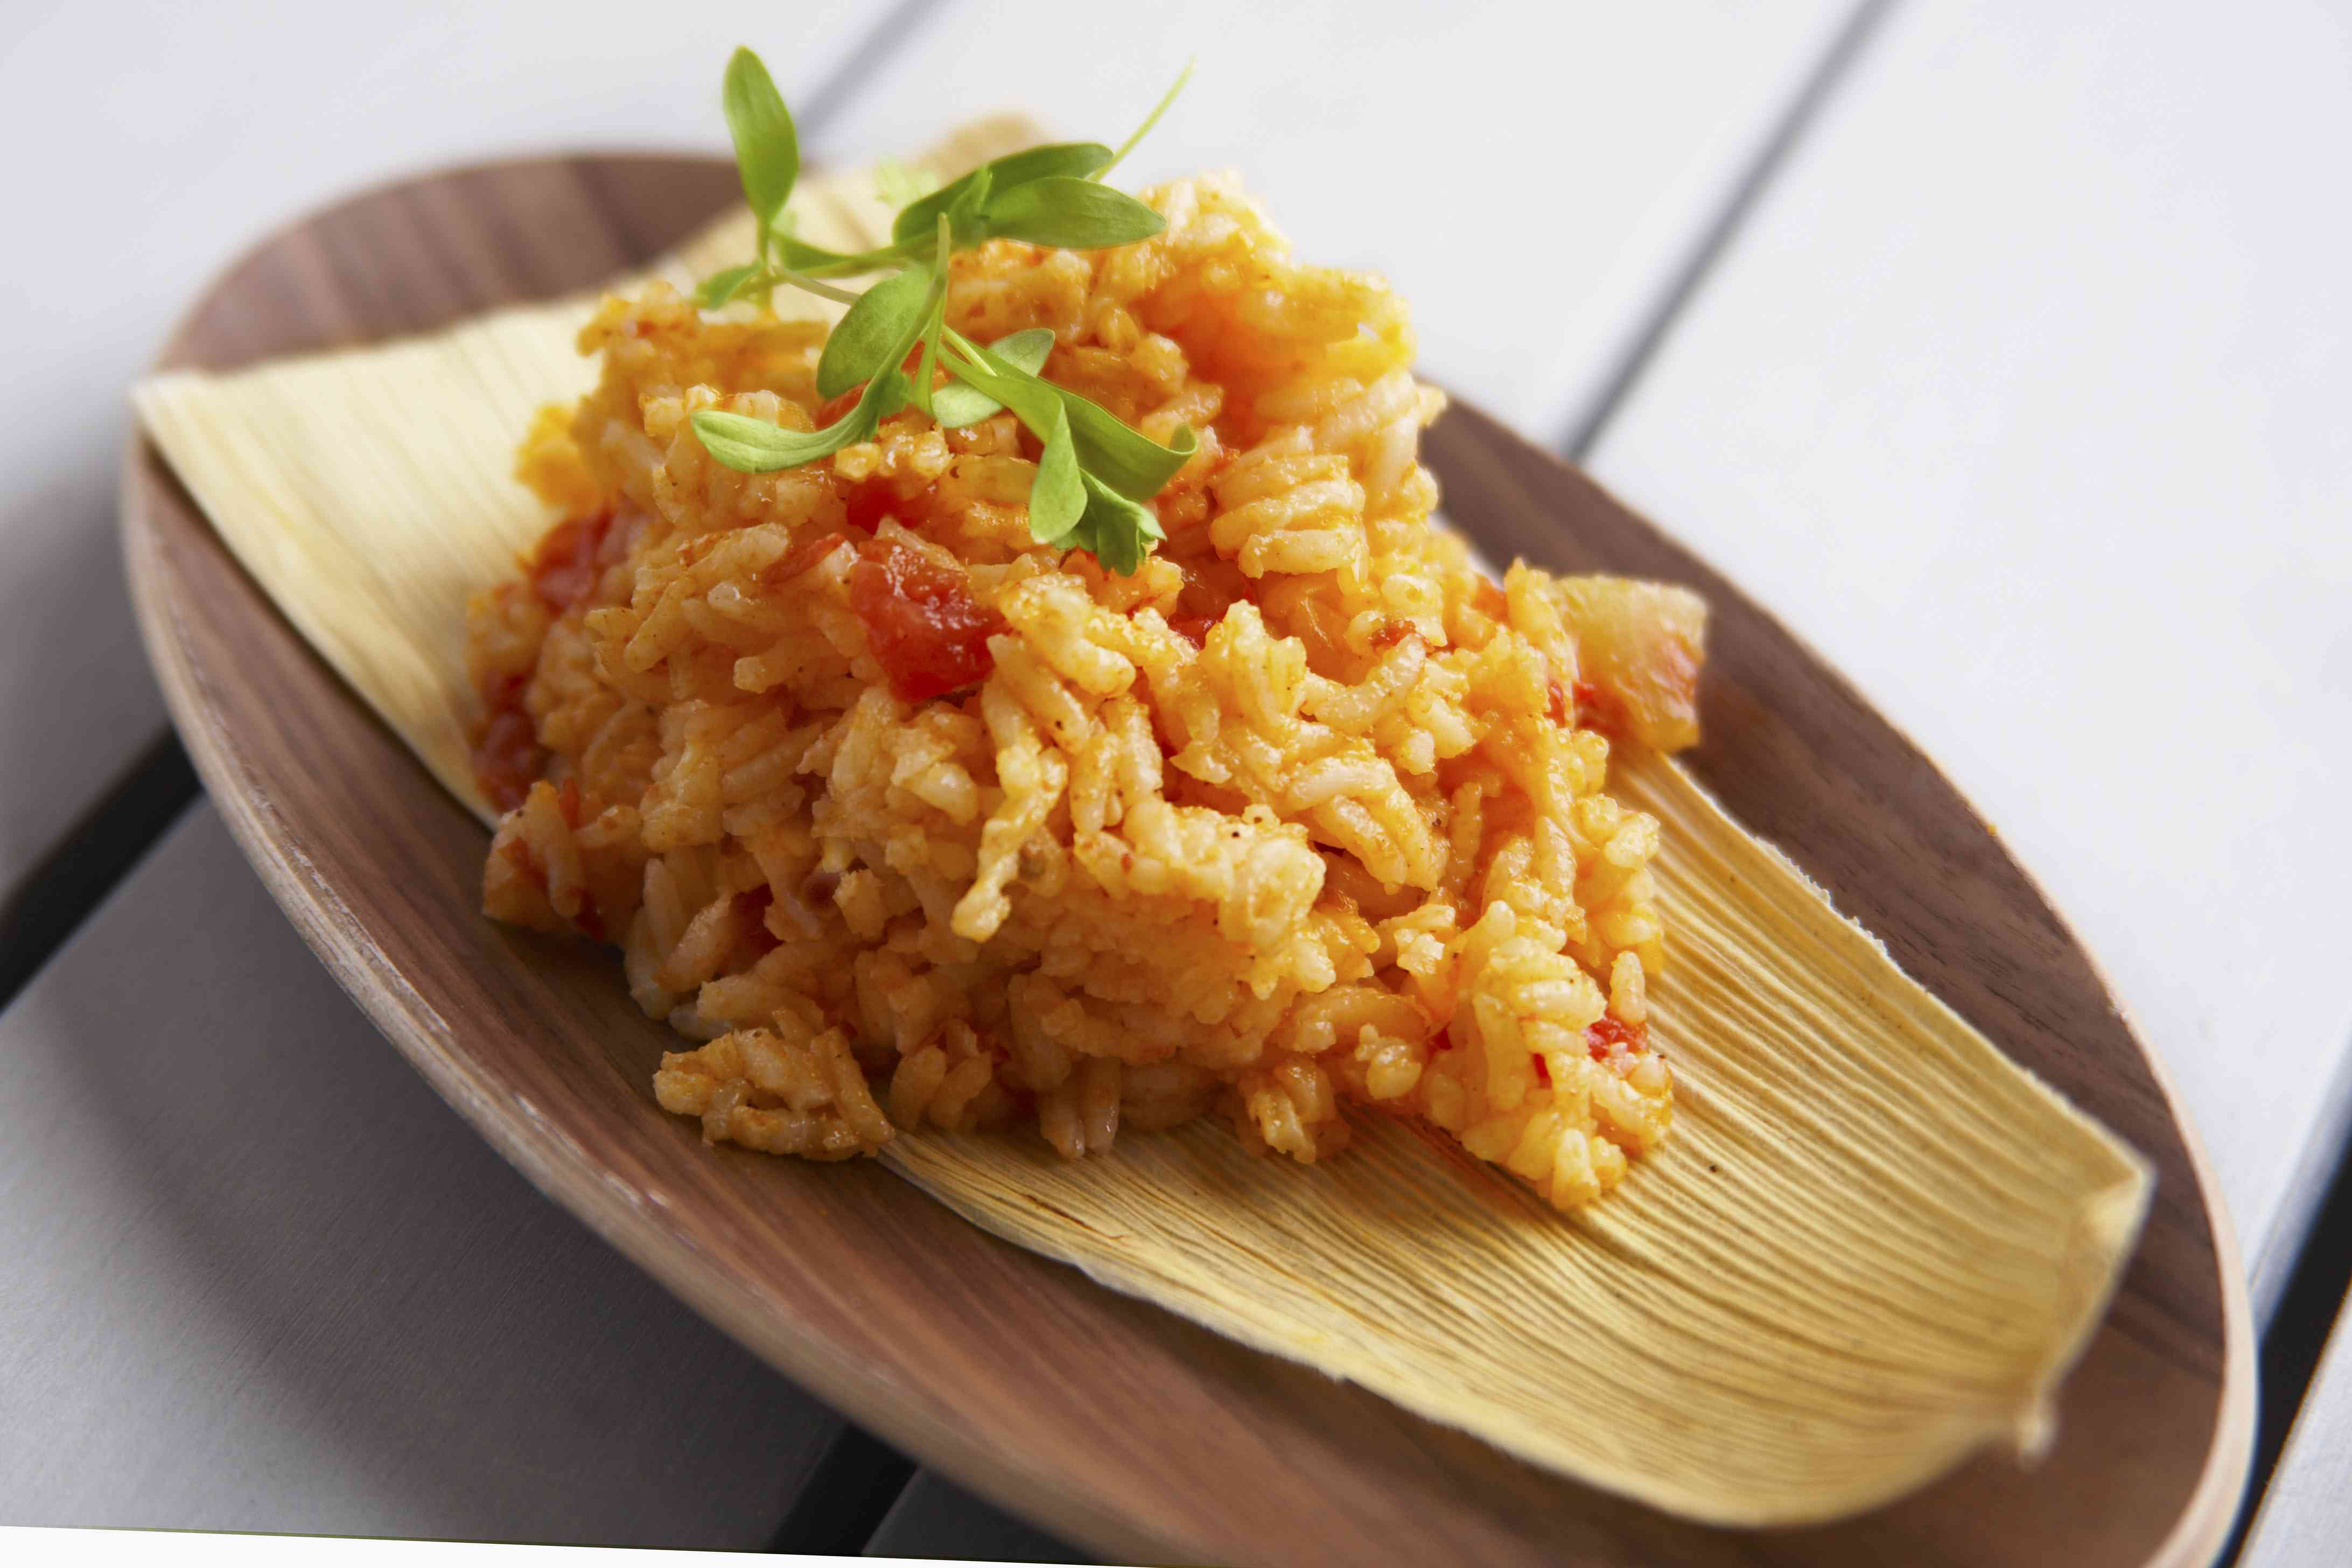 Achiote rice with cardigan